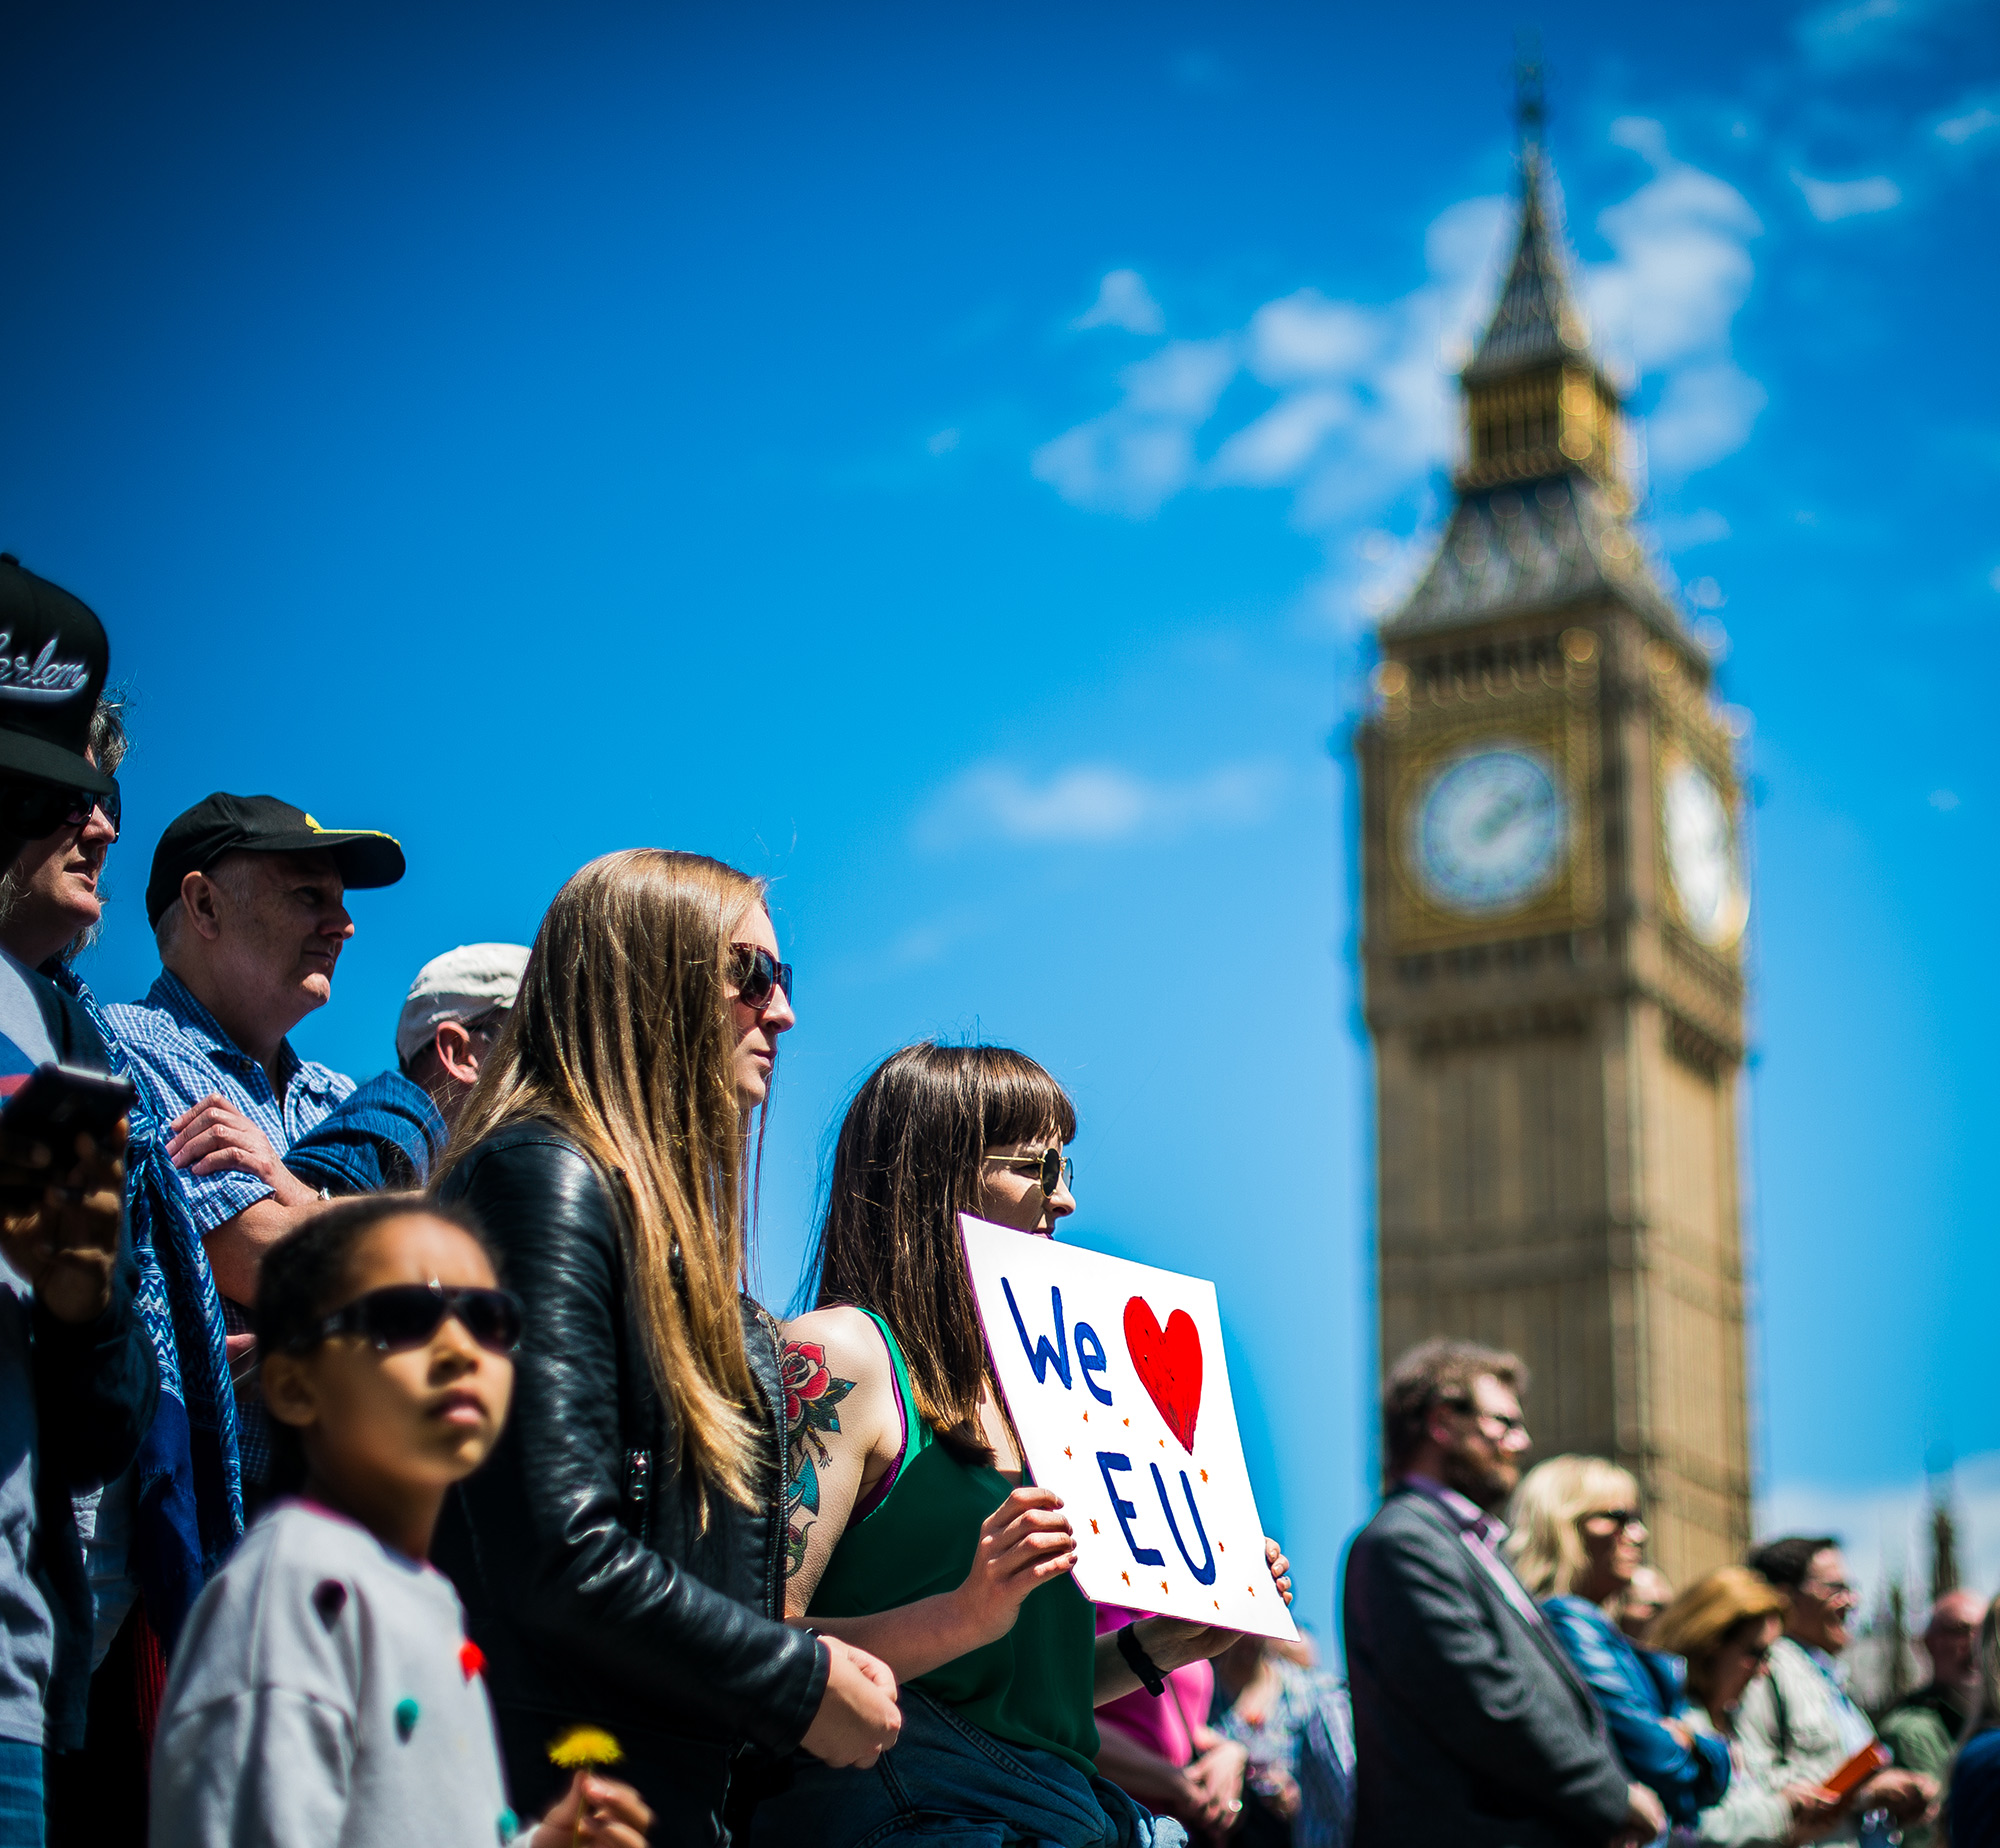 A young woman holds up a sign in favor of the European Union at the 'March for Europe' protest on July 2, London's Big Ben visible in the sky above. (Photo by Garon S/Flickr User)